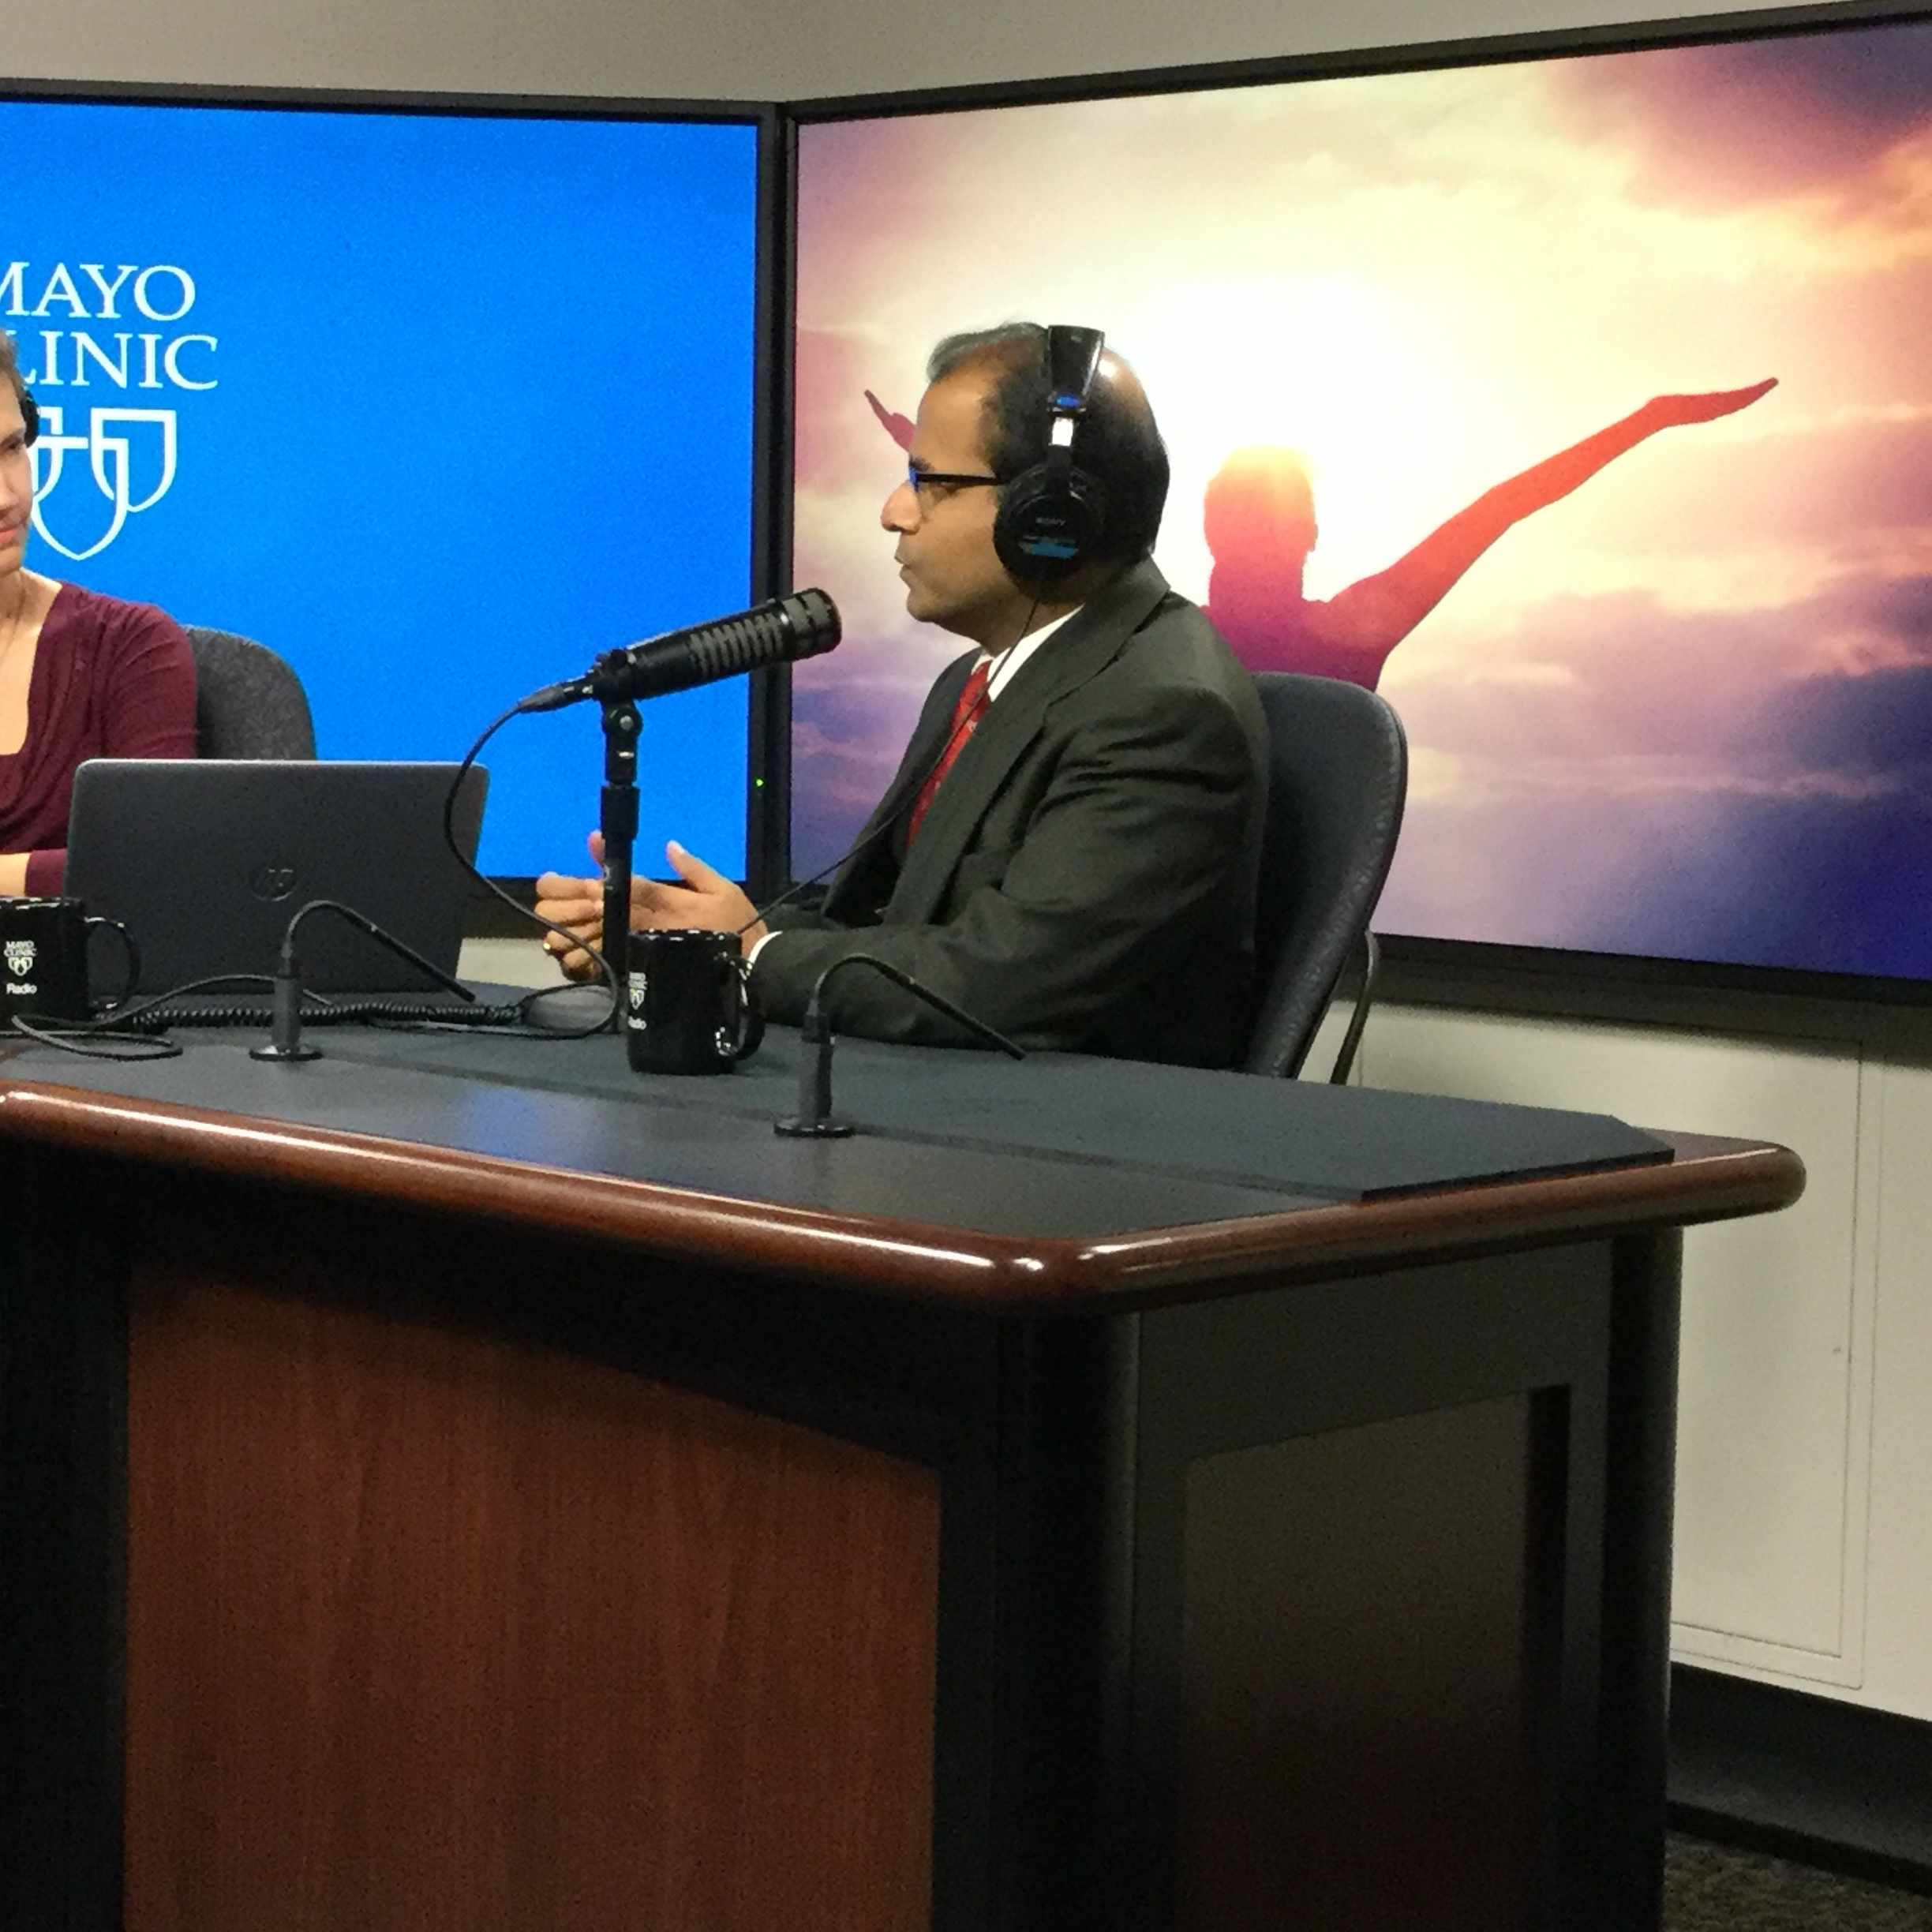 Dr. Amit Sood being interviewed on Mayo Clinic Radio